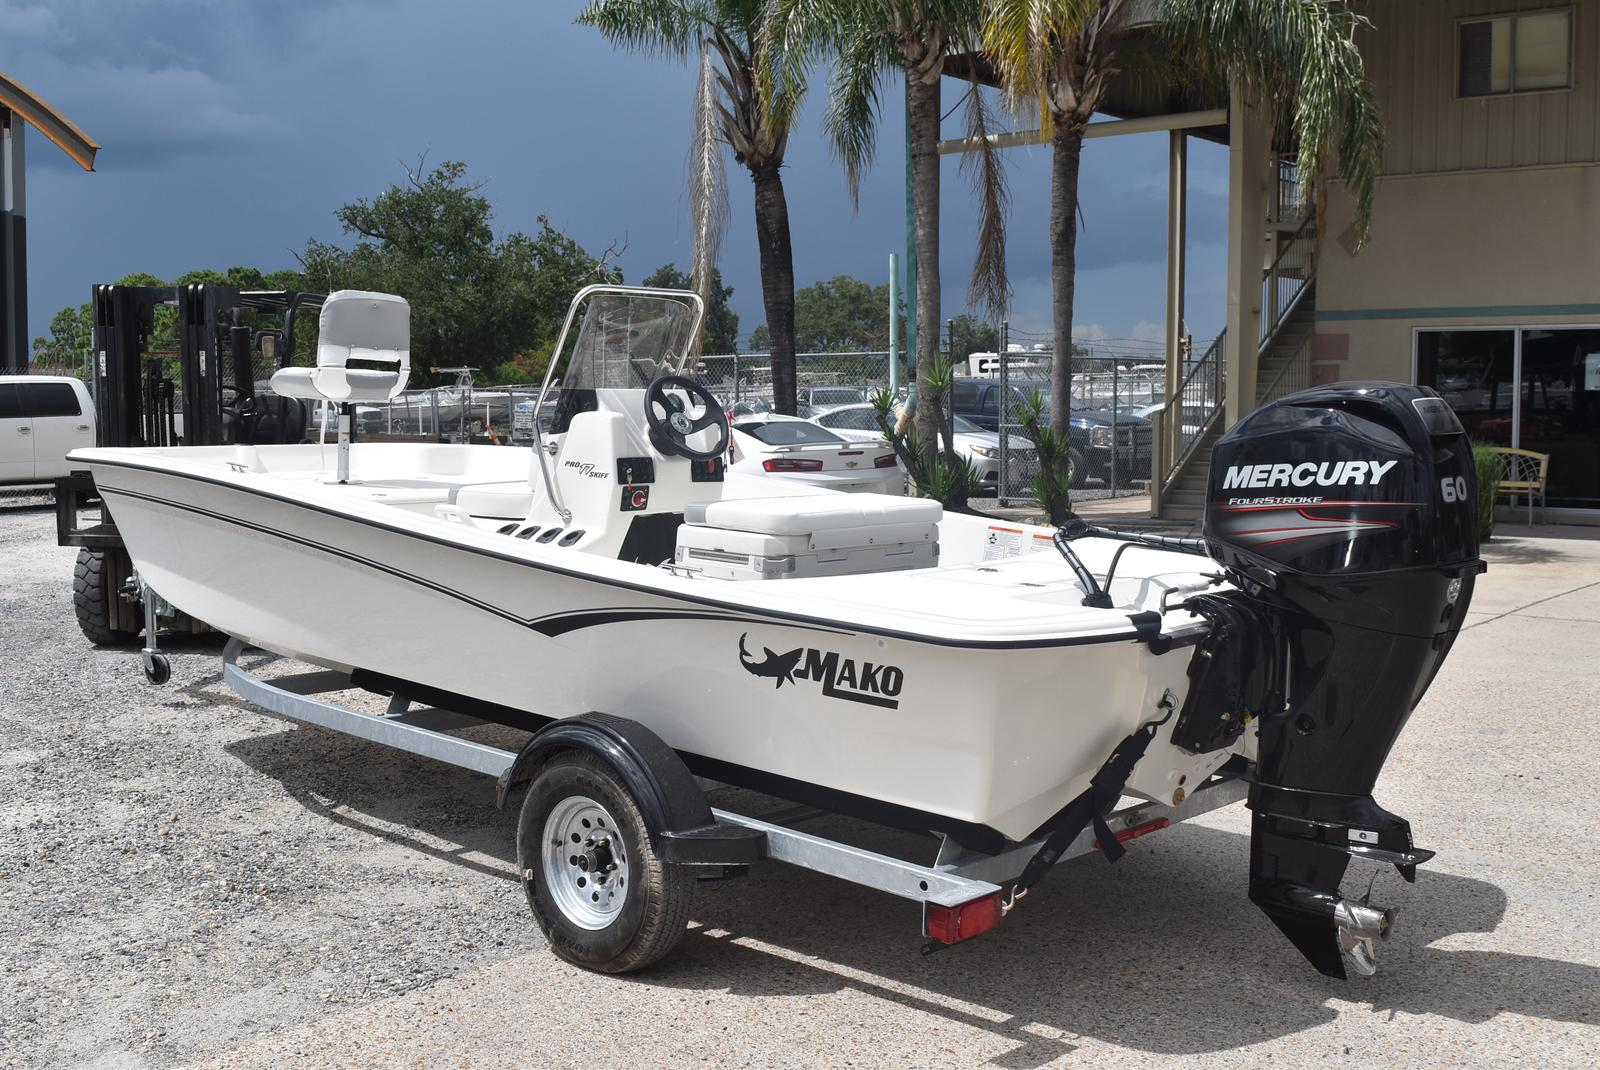 2020 Mako boat for sale, model of the boat is Pro Skiff 17, 75 ELPT & Image # 169 of 702